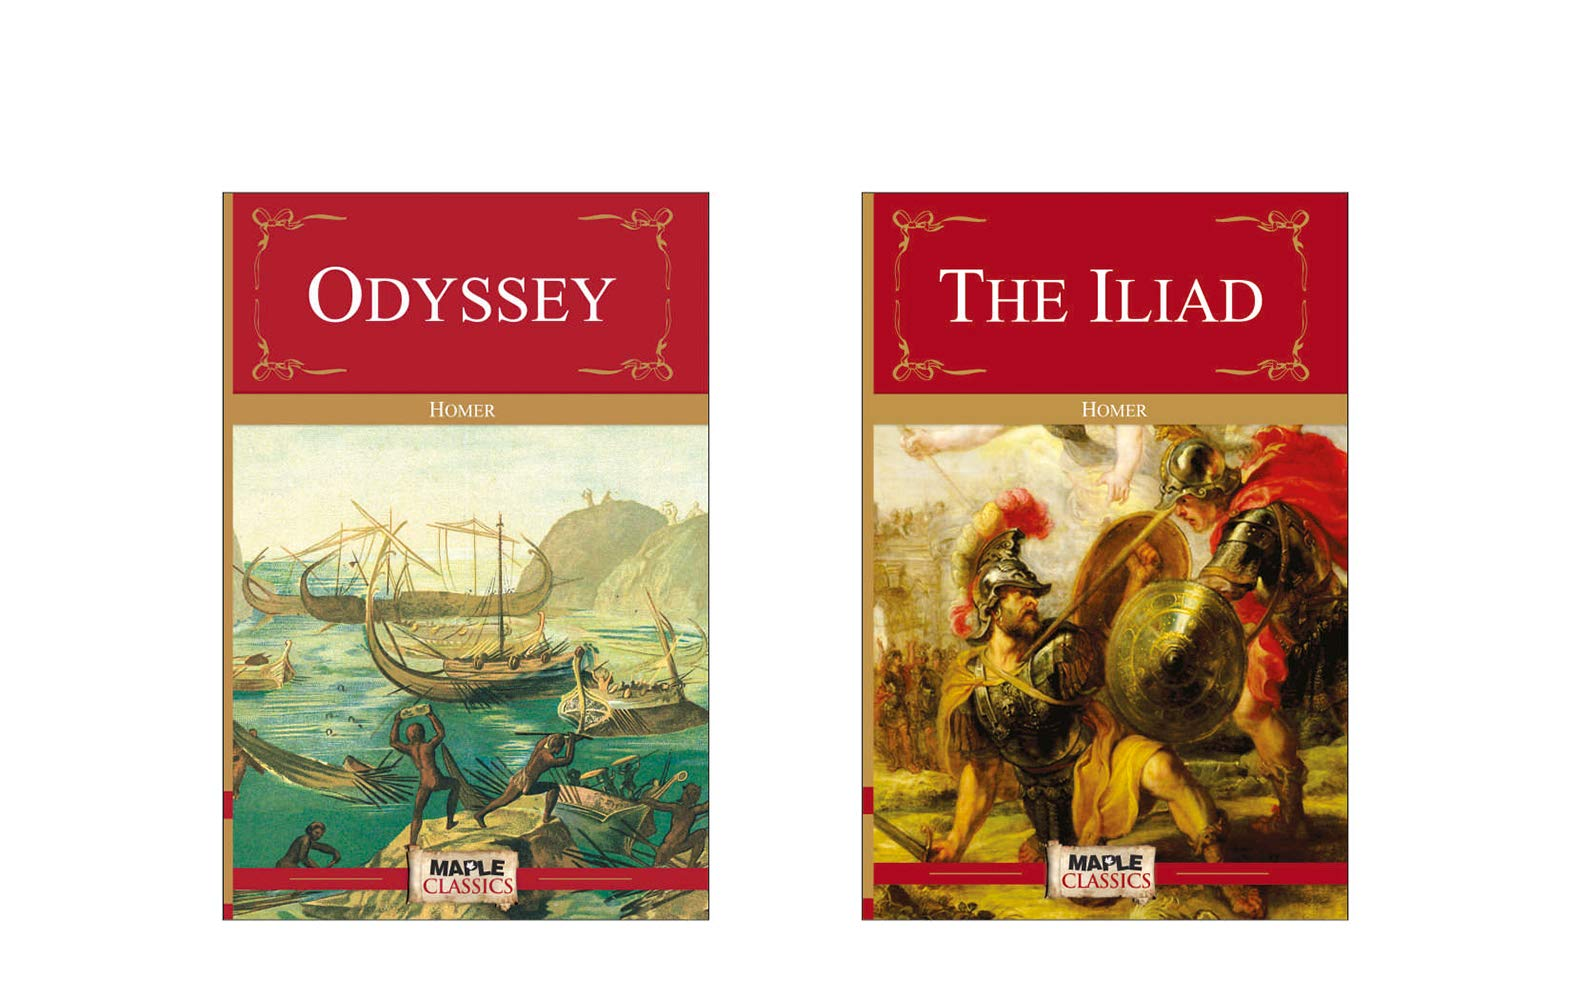 Homer (Set of 2 Books) - Odyssey and The Illiad